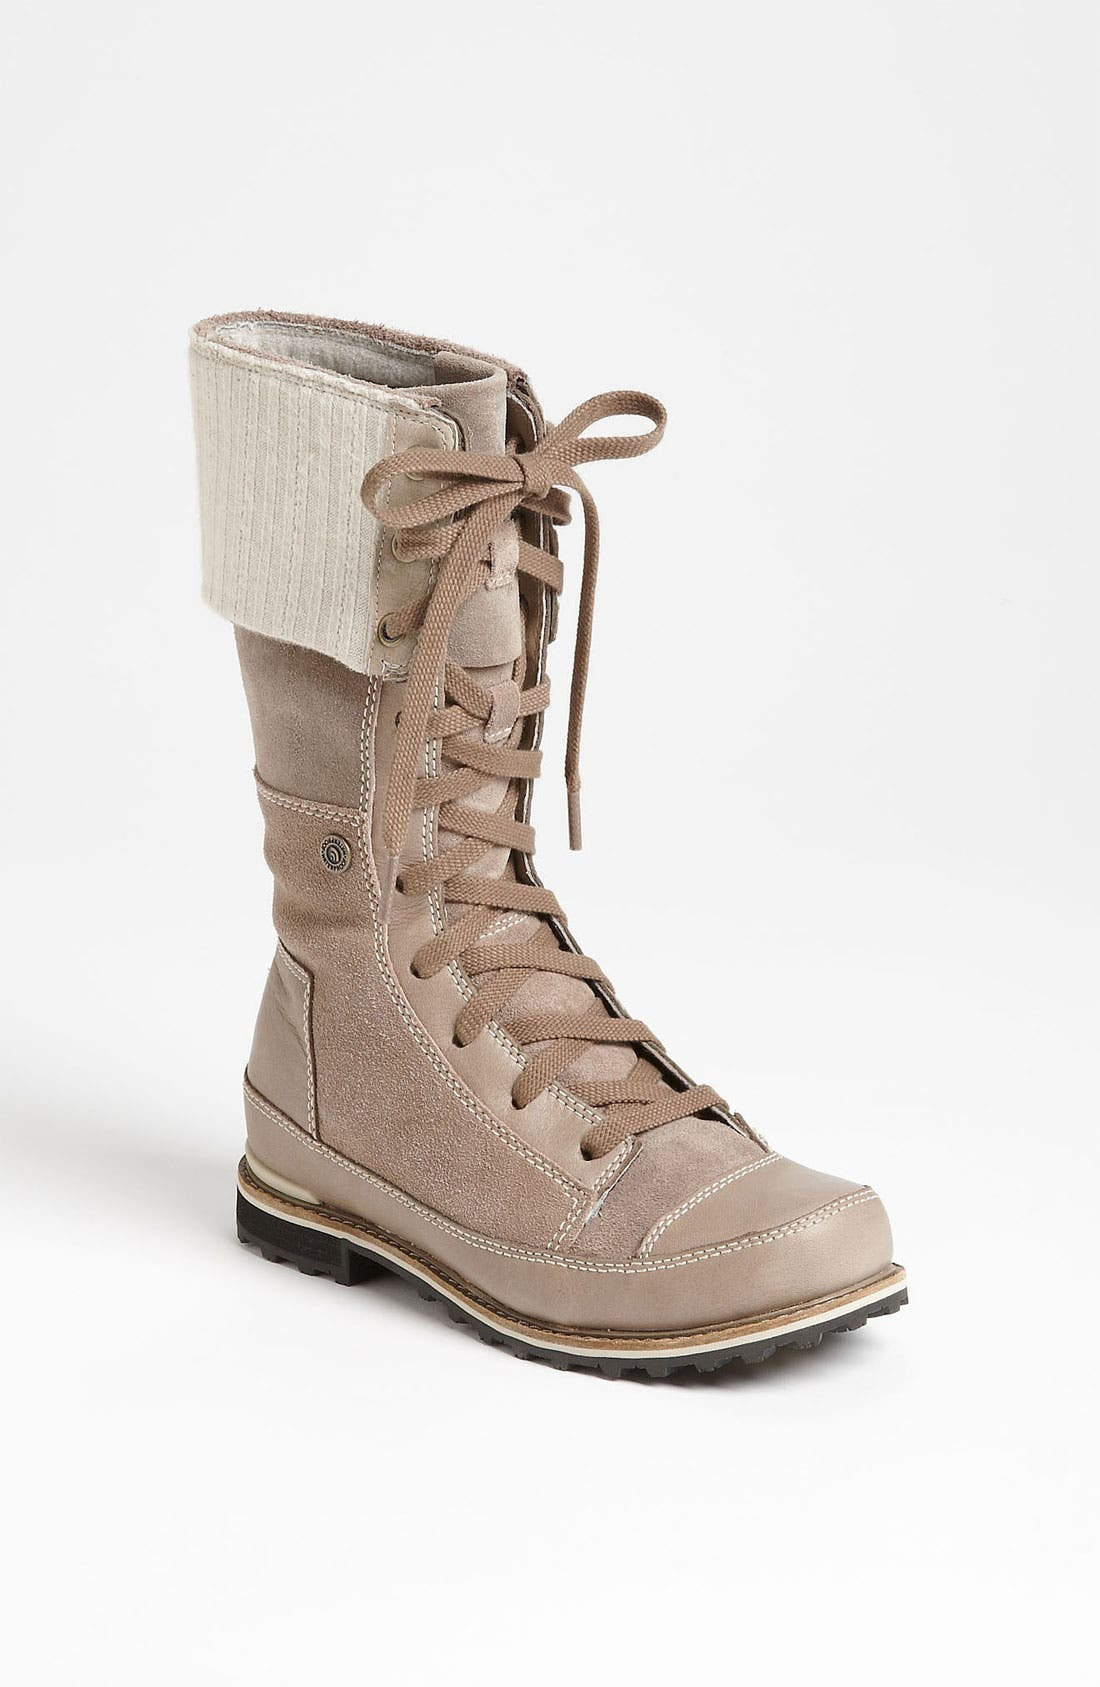 Alternate Image 1 Selected - The North Face 'Snowtropolis' Boot